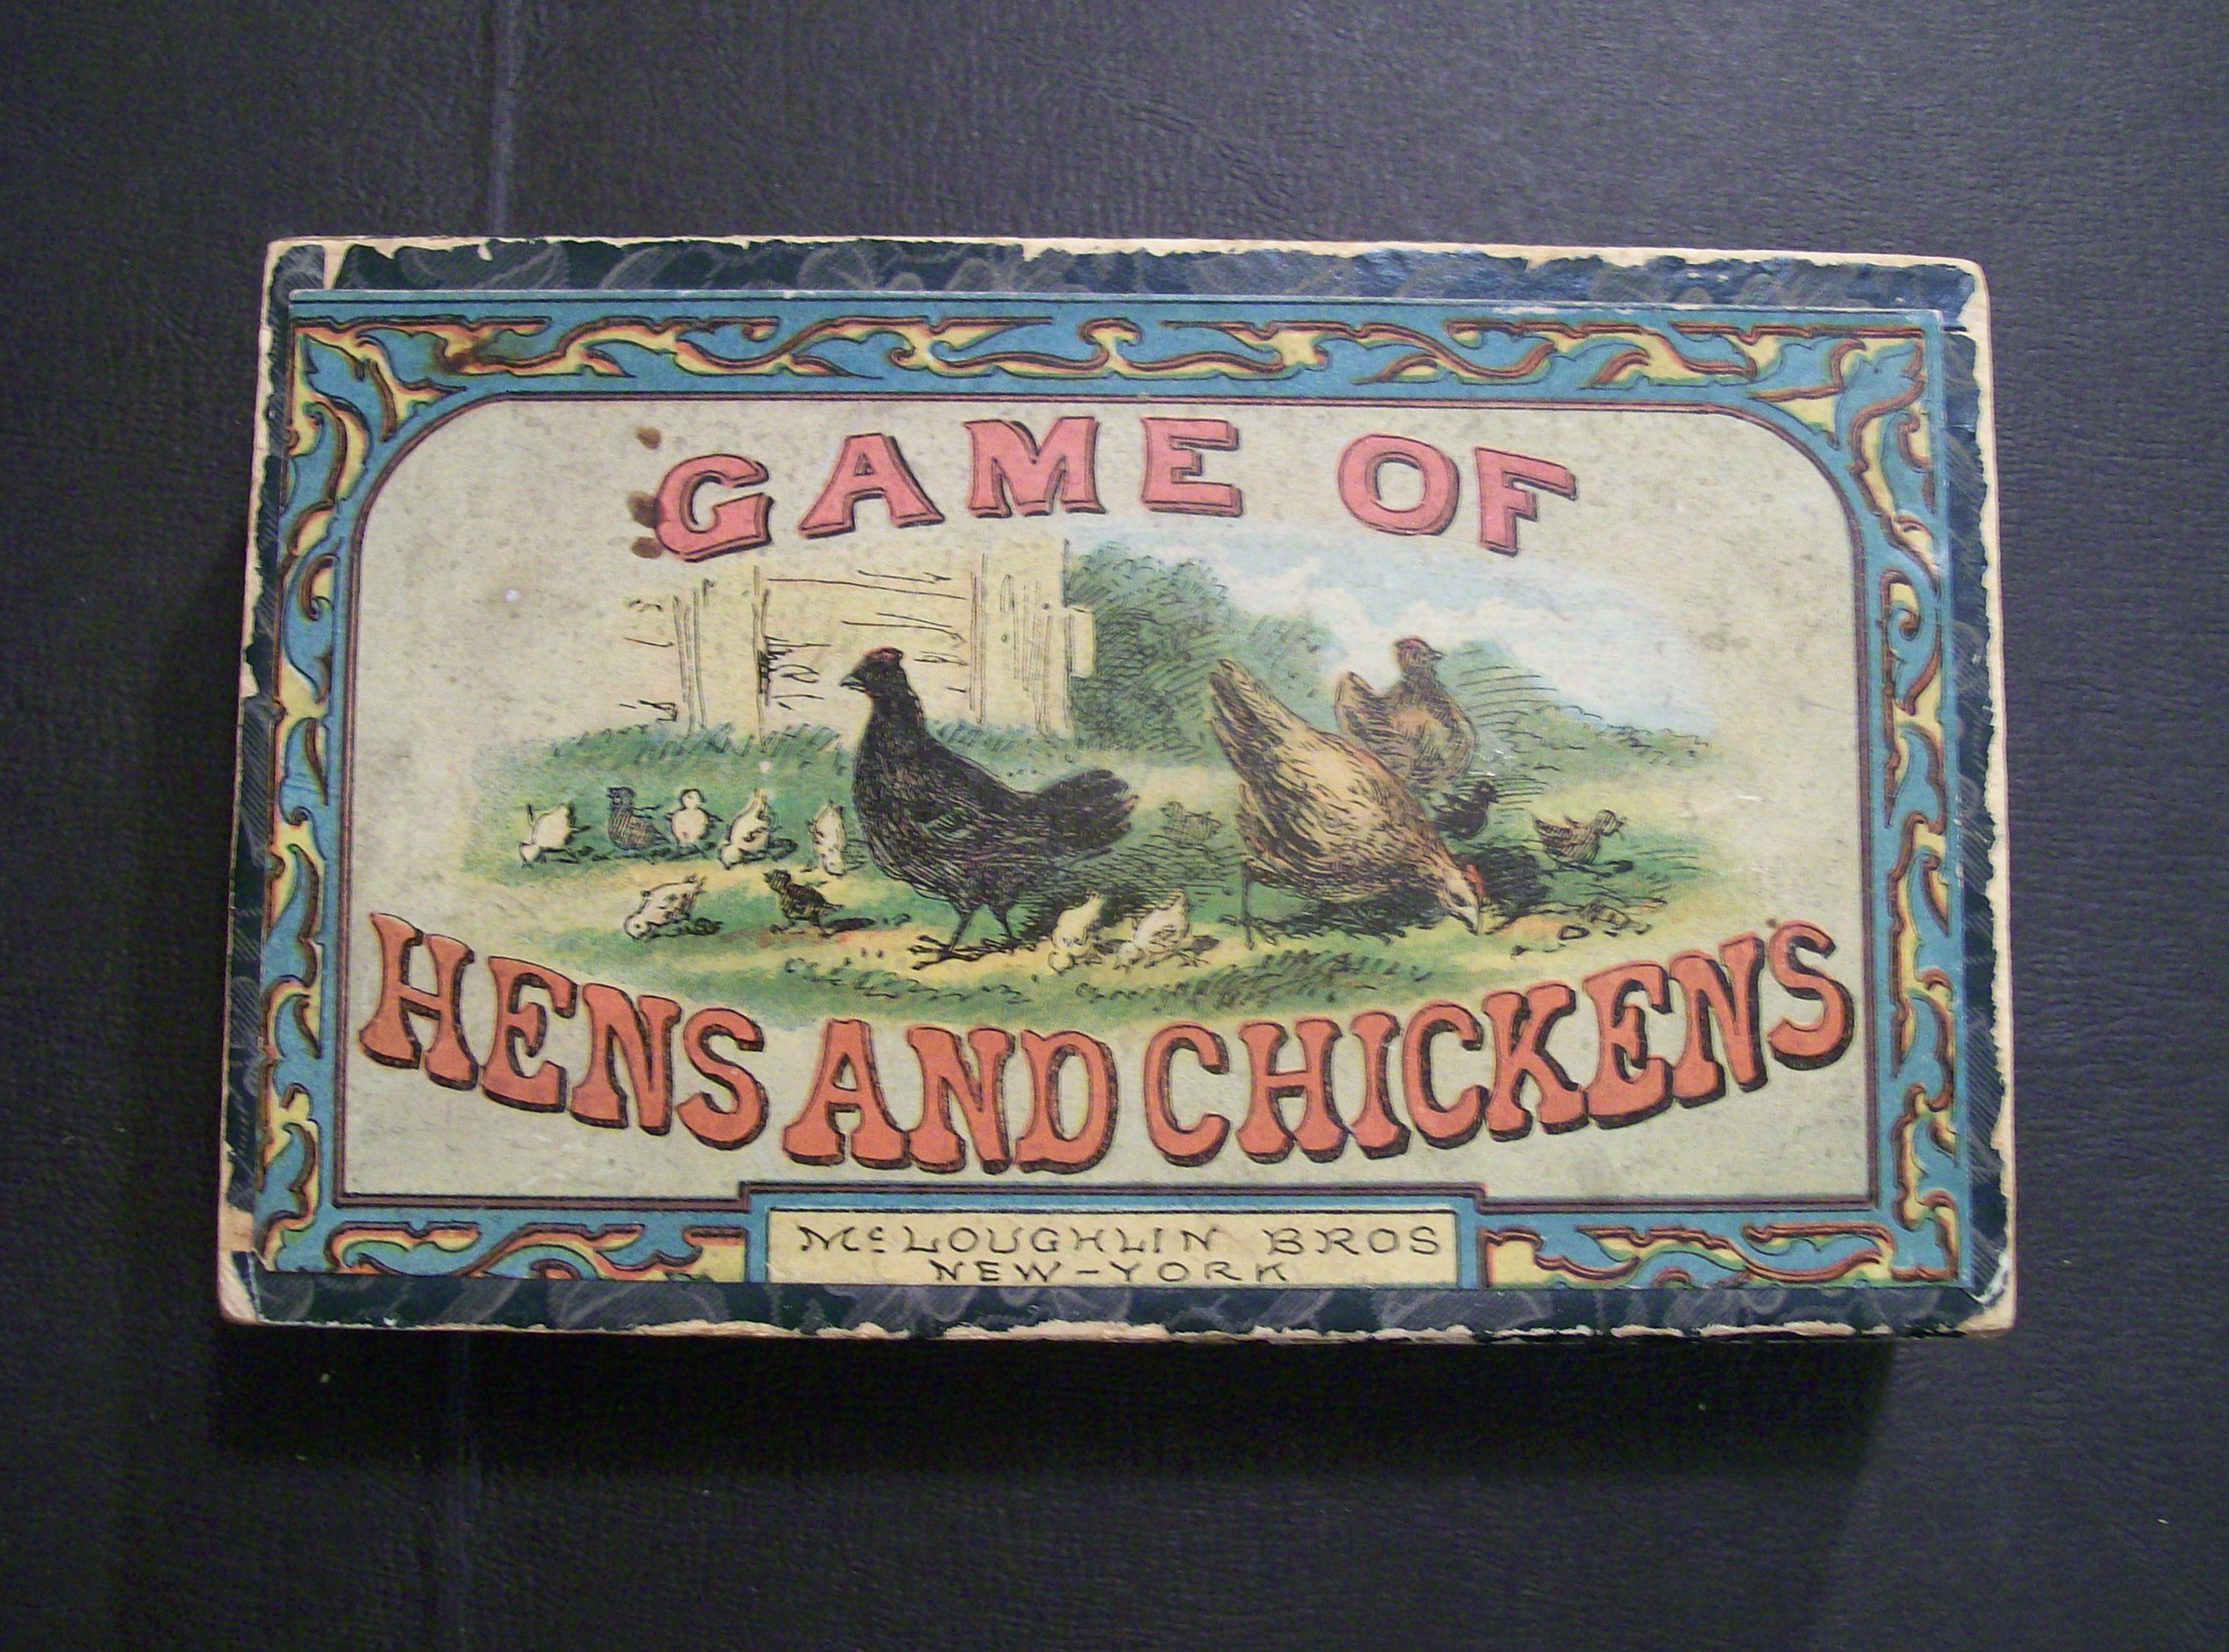 Game of Hens and Chickens